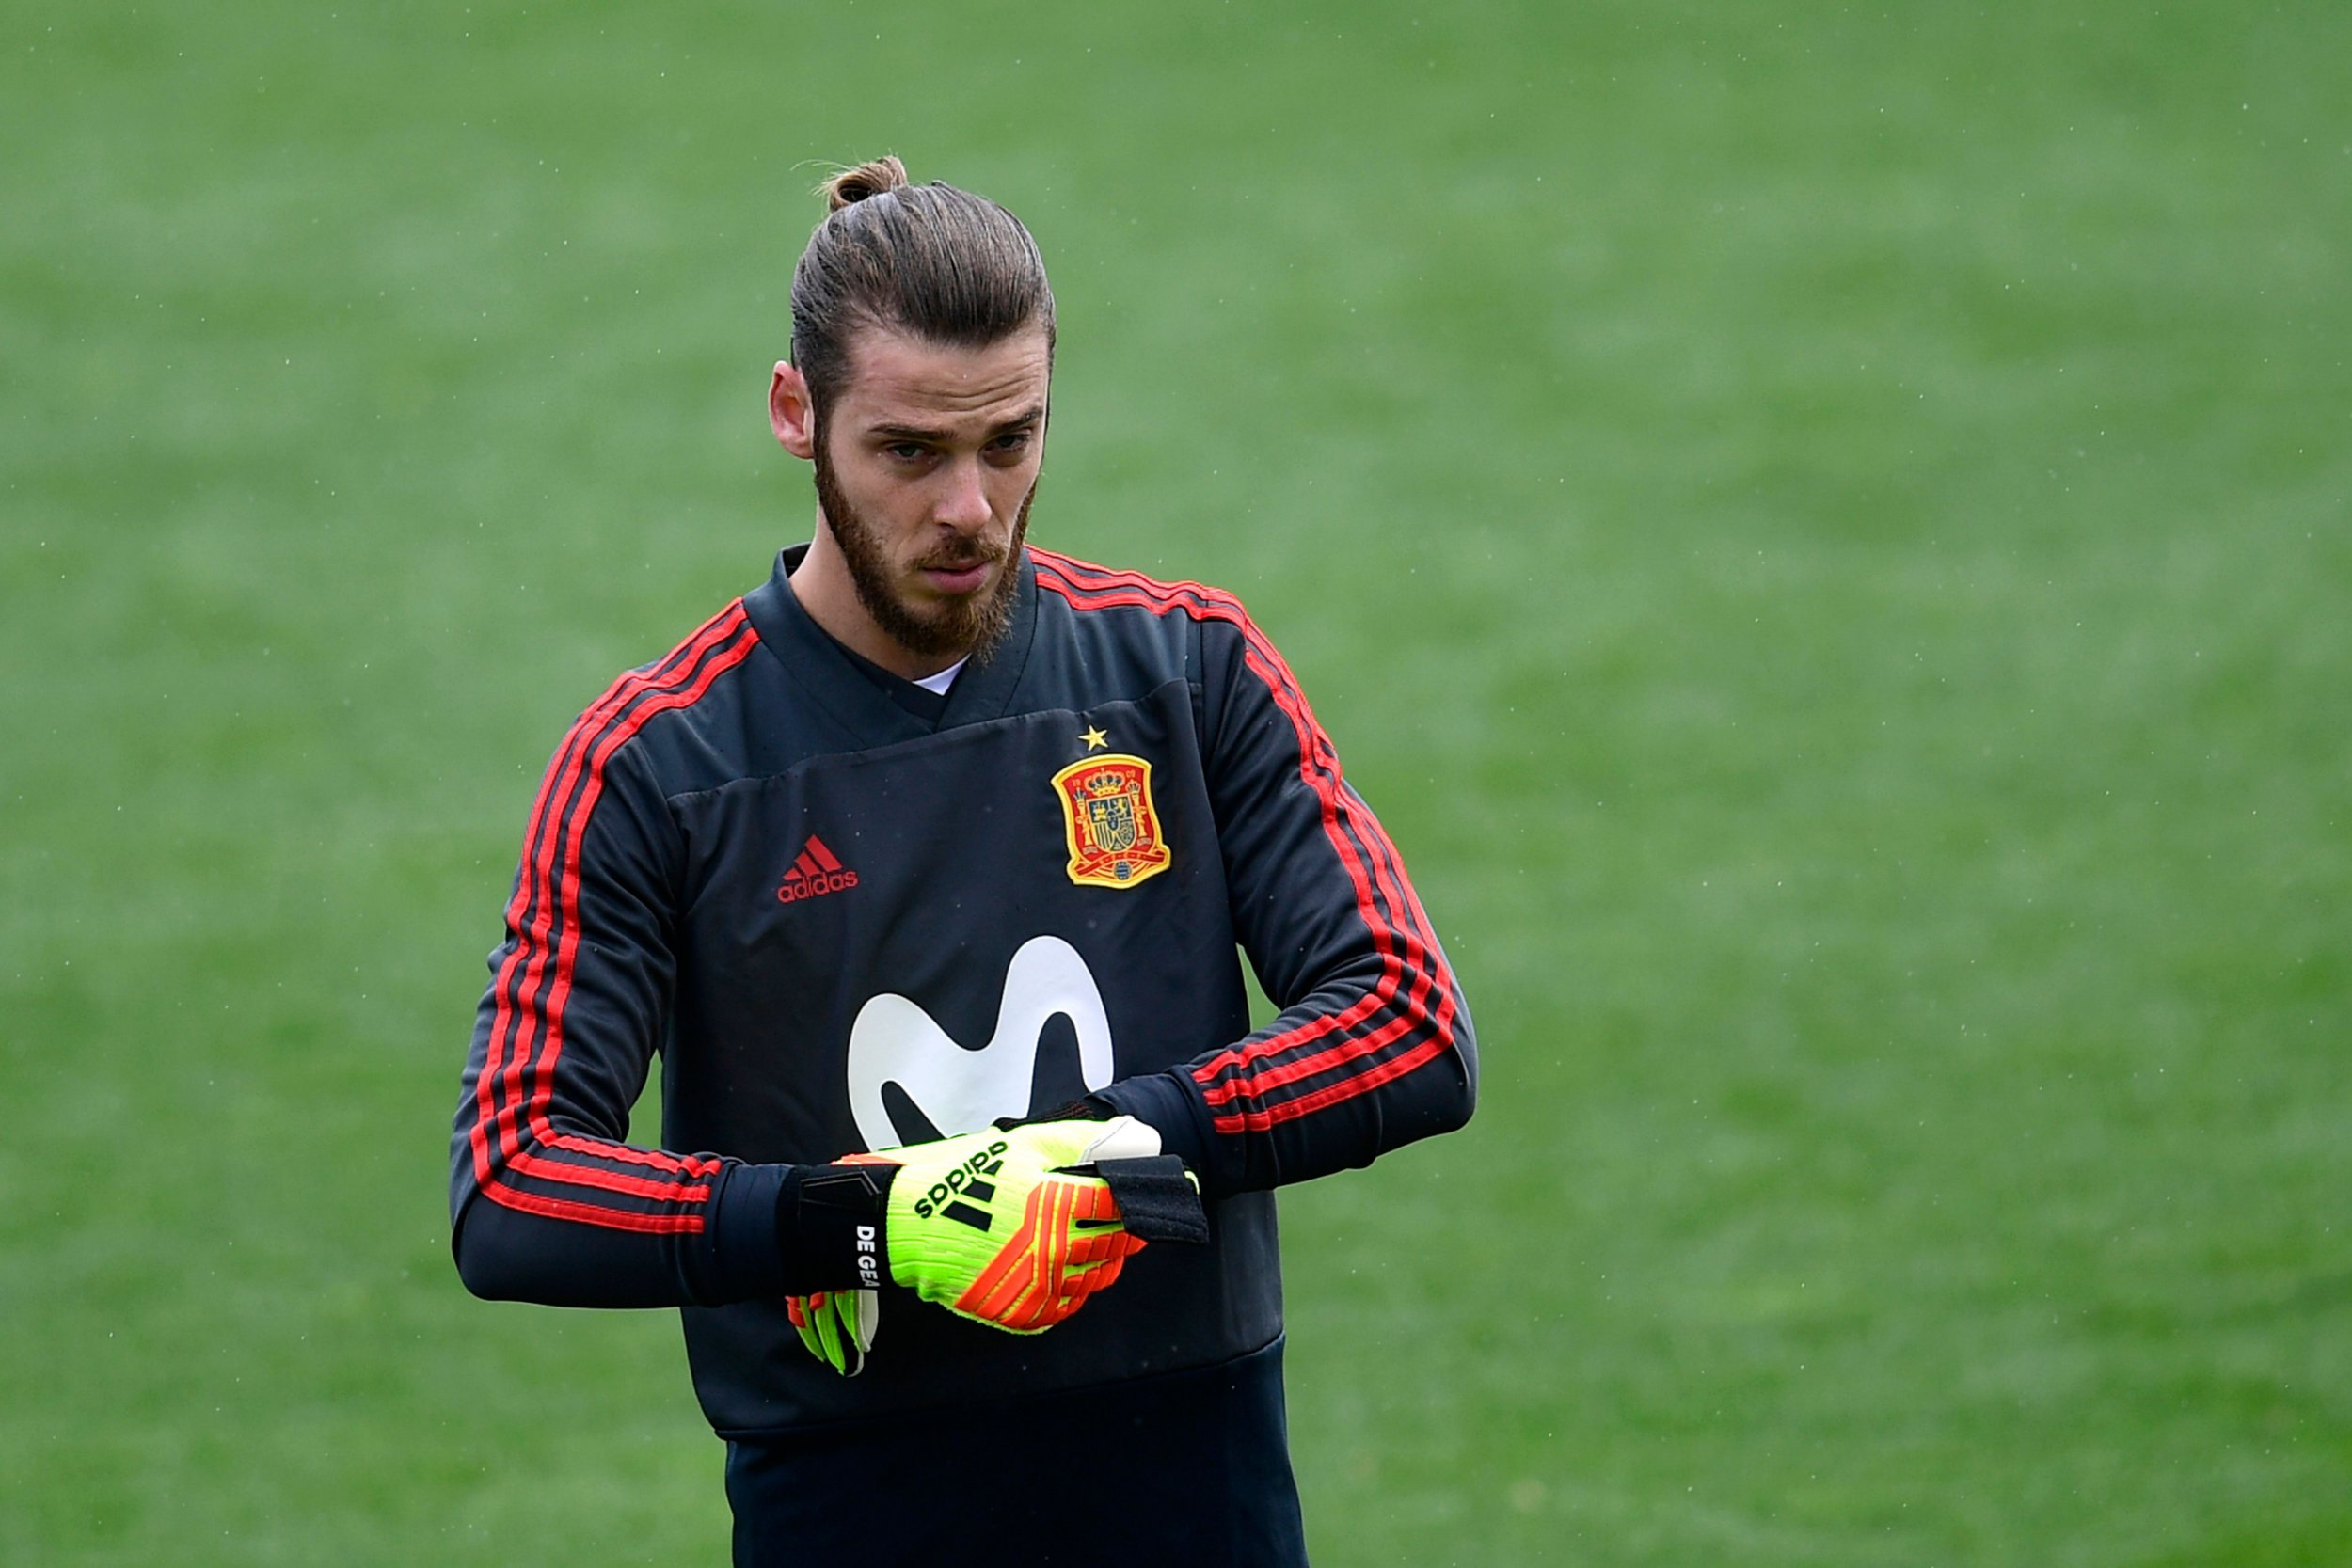 David De Gea sends message to Real Madrid: I'm happy at Manchester United